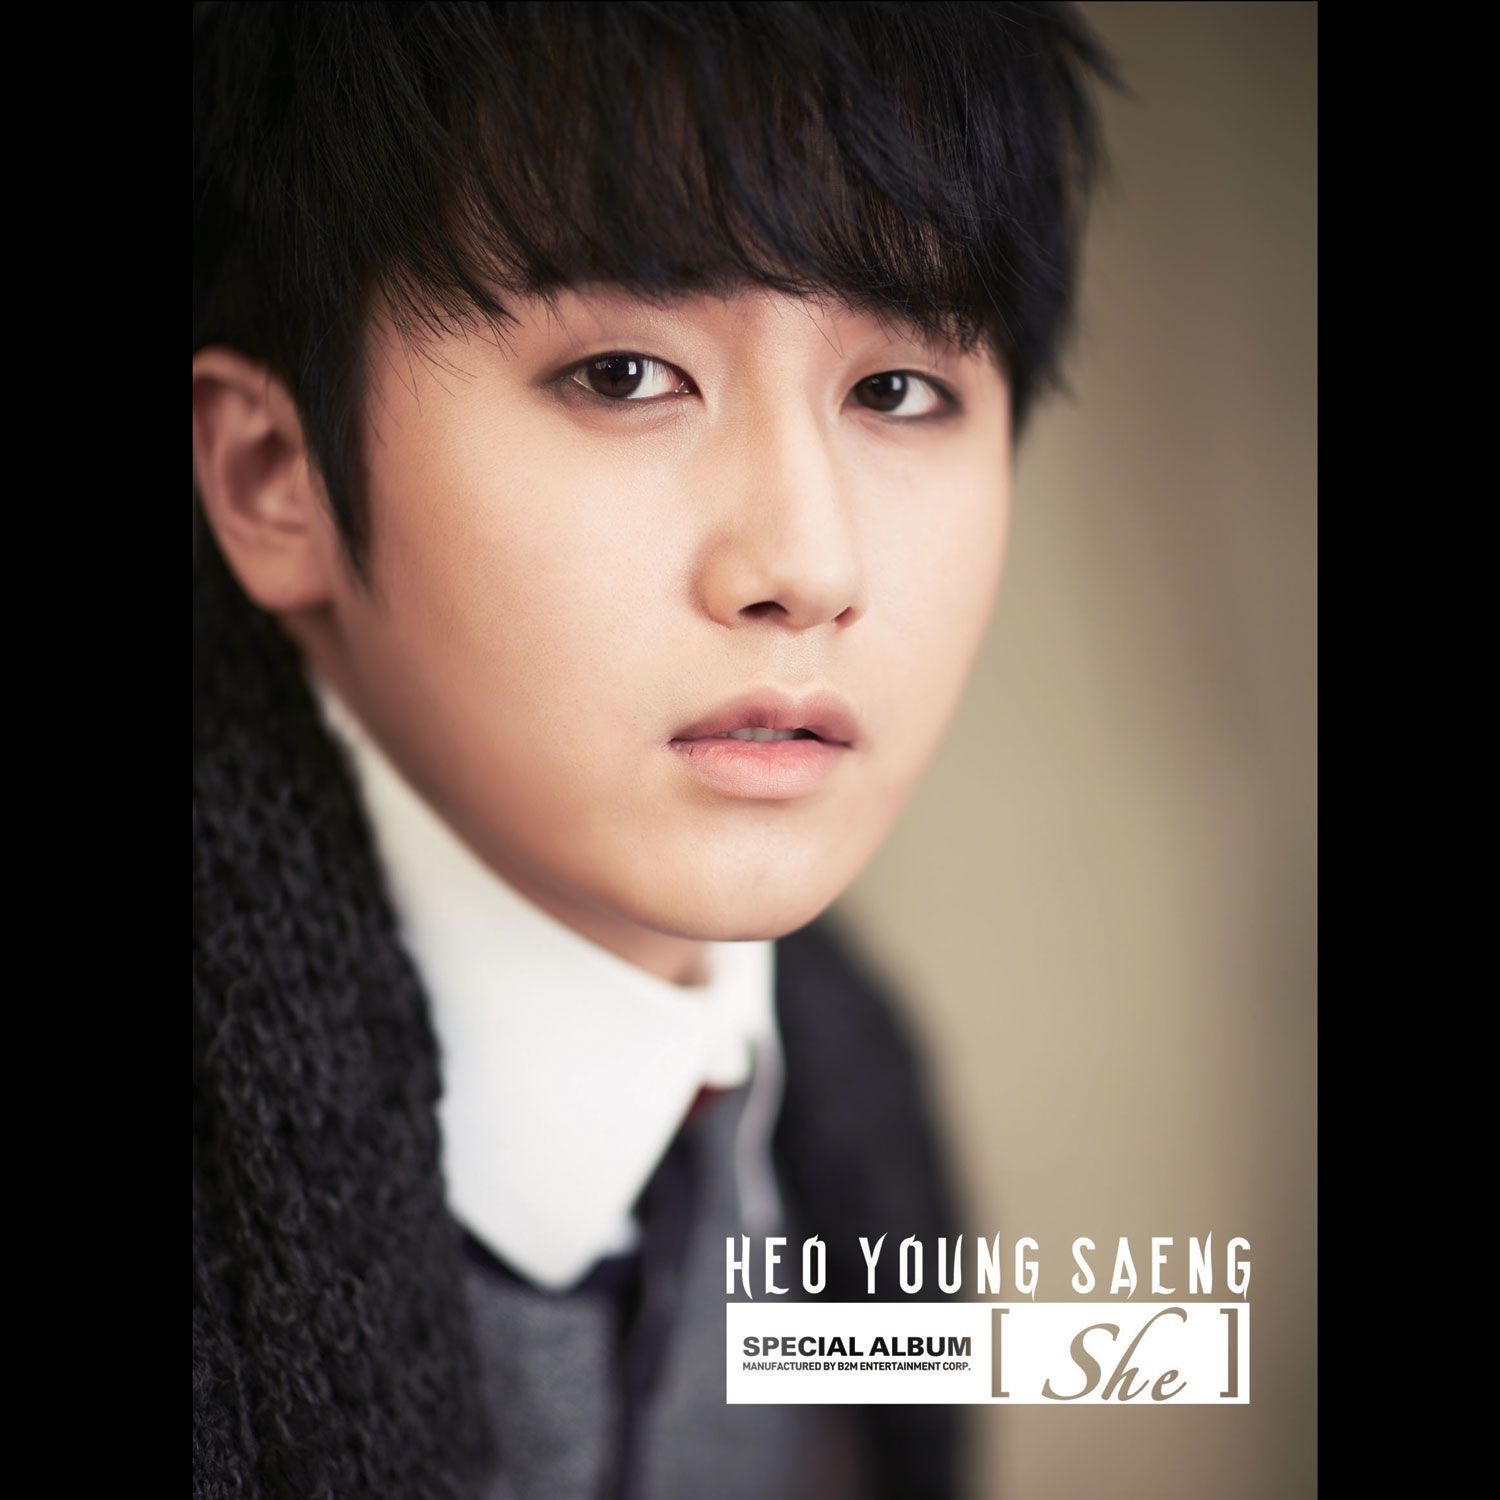 [Mini Album] Heo Young Saeng - She [Special Album]